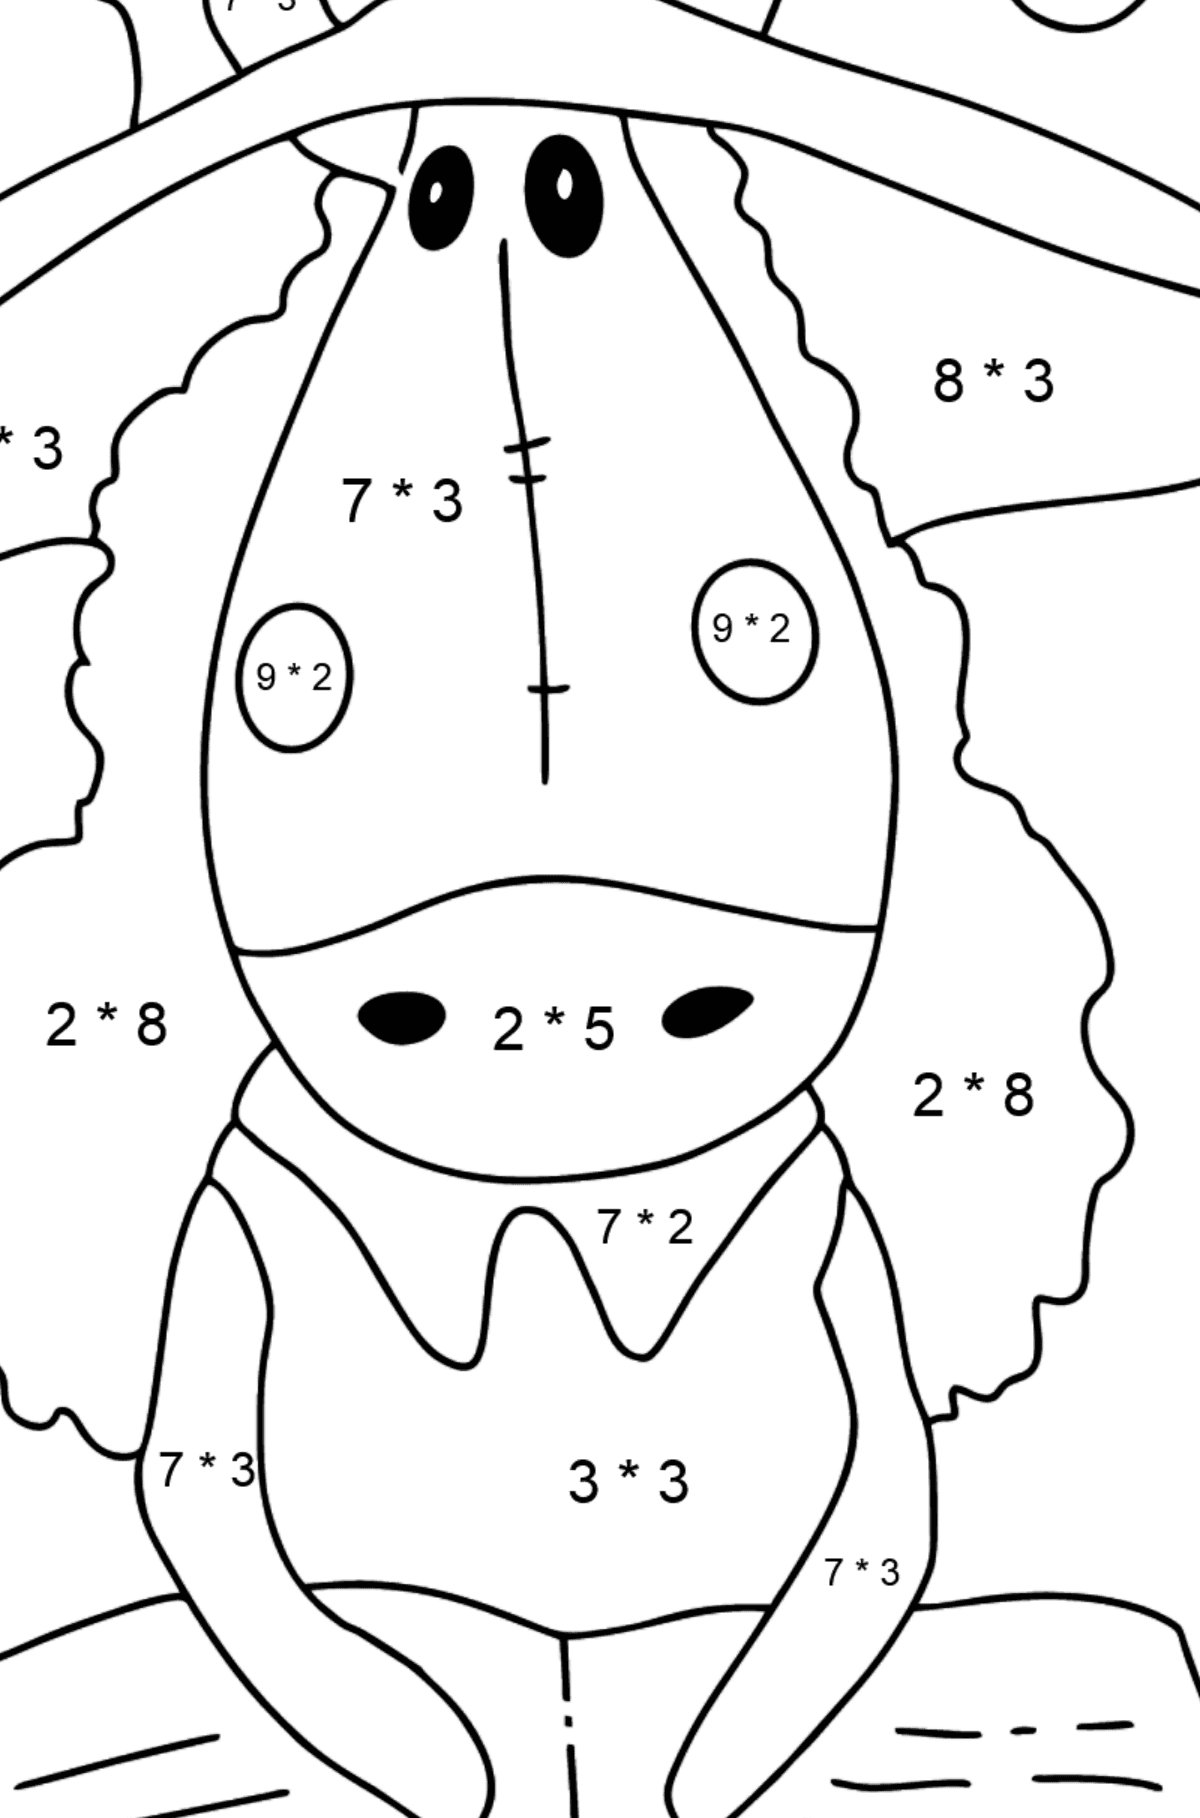 Coloring page a horse with book - Math Coloring - Multiplication for Kids